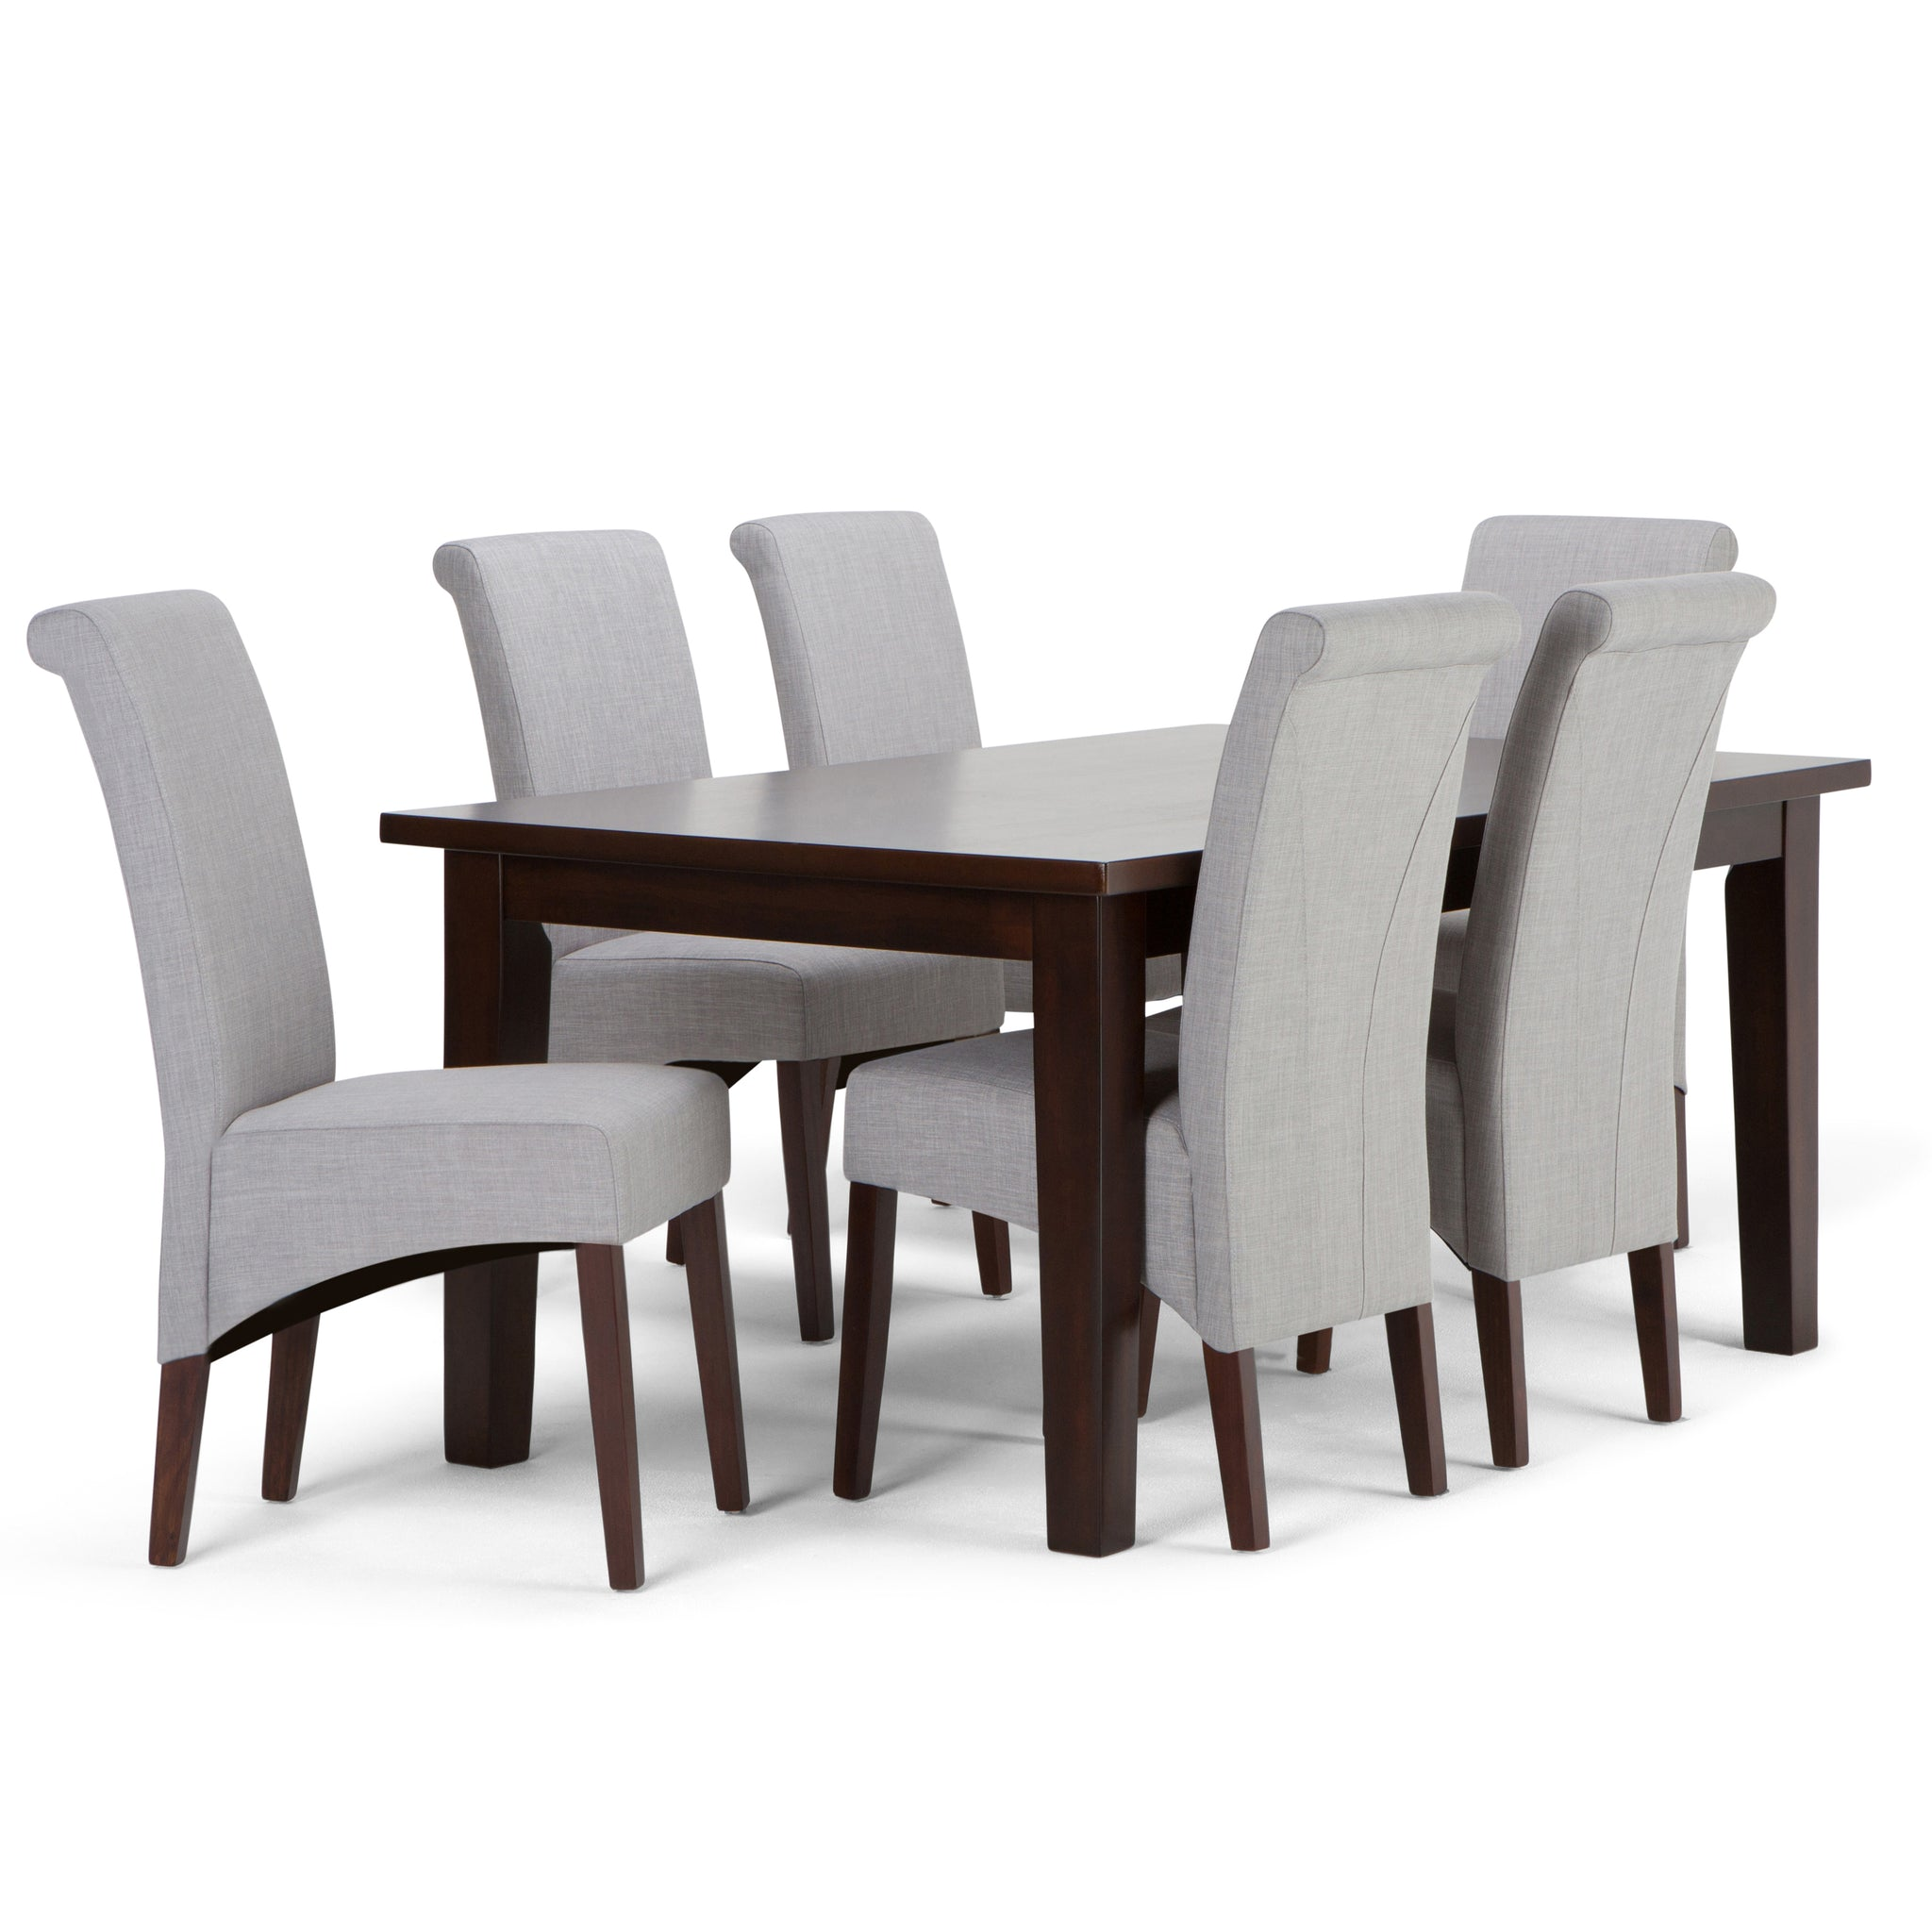 Avalon 7 piece Dining Set in Dove Grey Linen Look Fabric